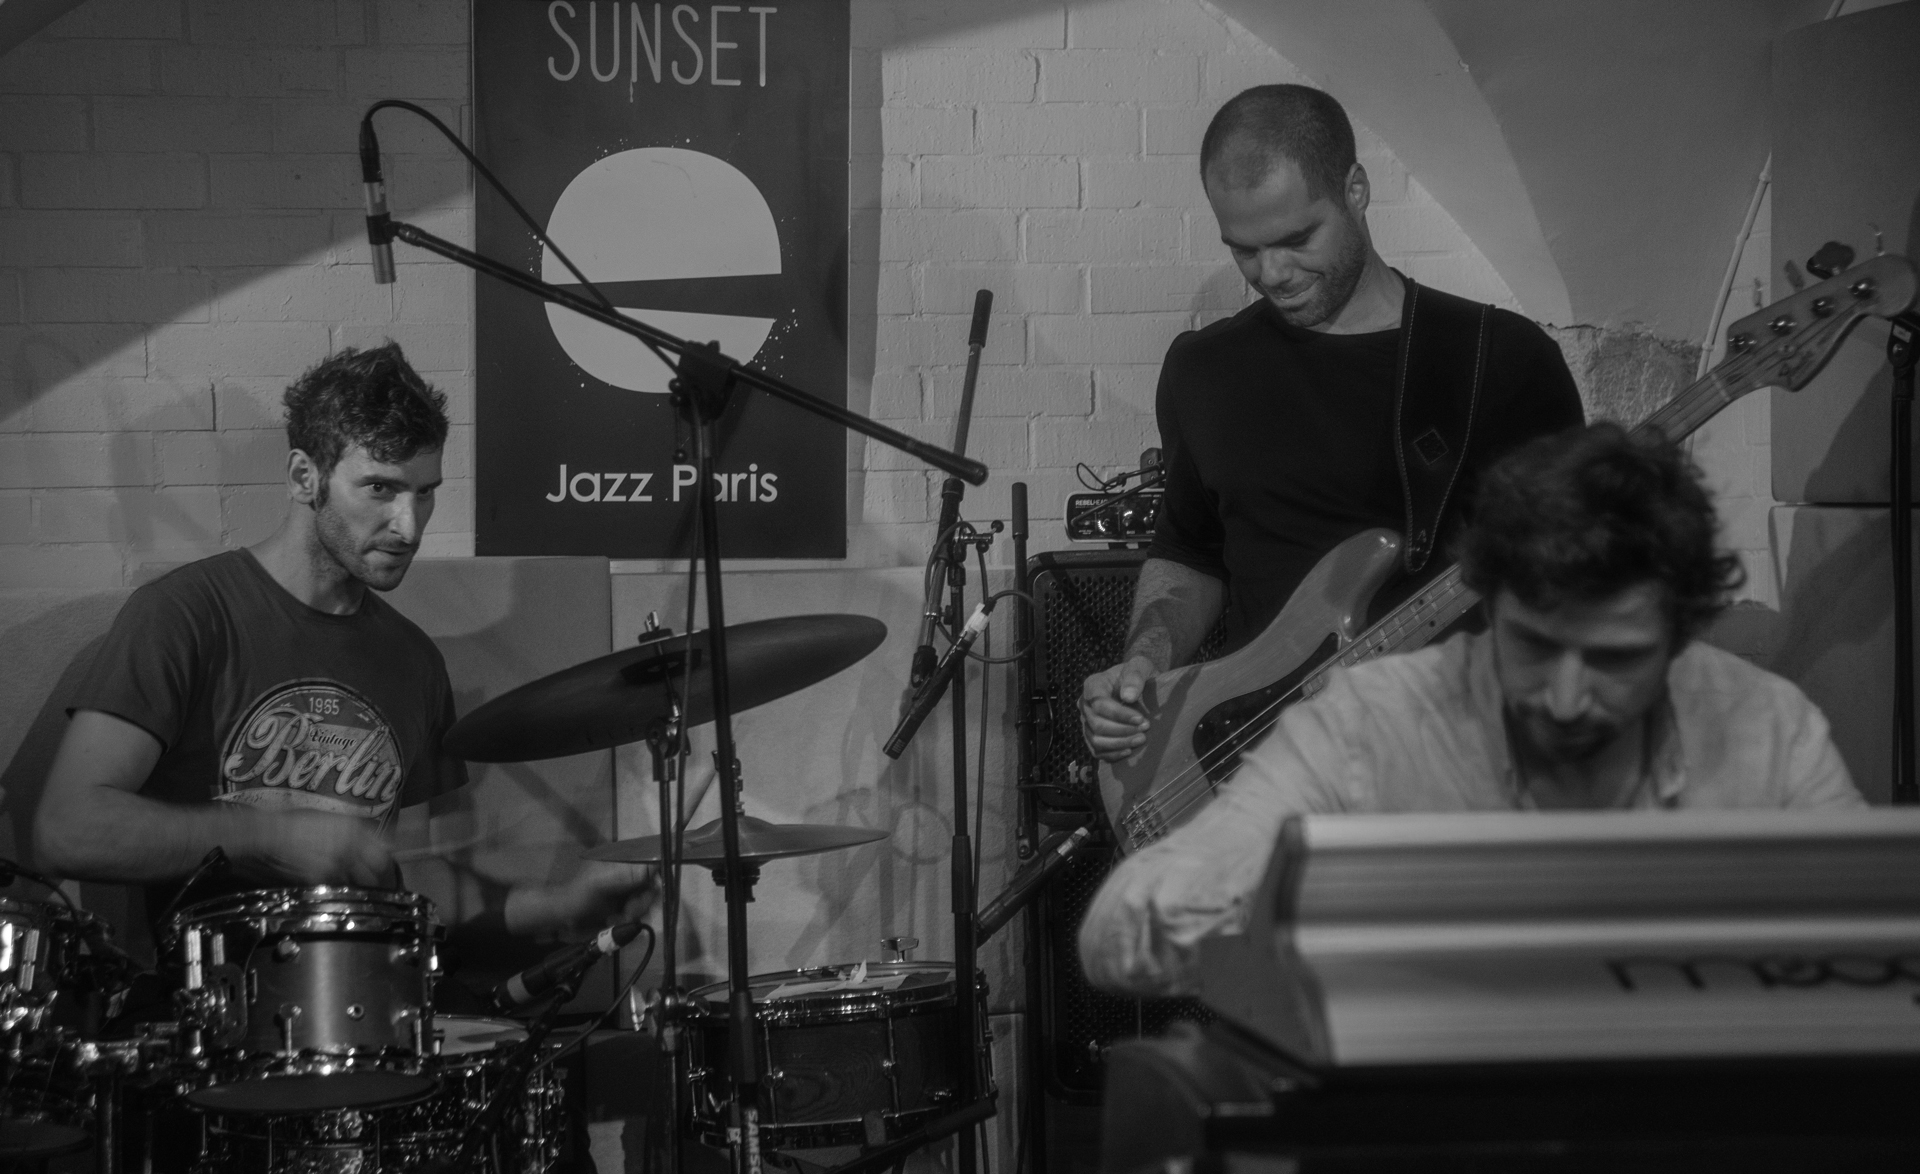 Jazz Rock Progressif - 4dB - concert Sunset